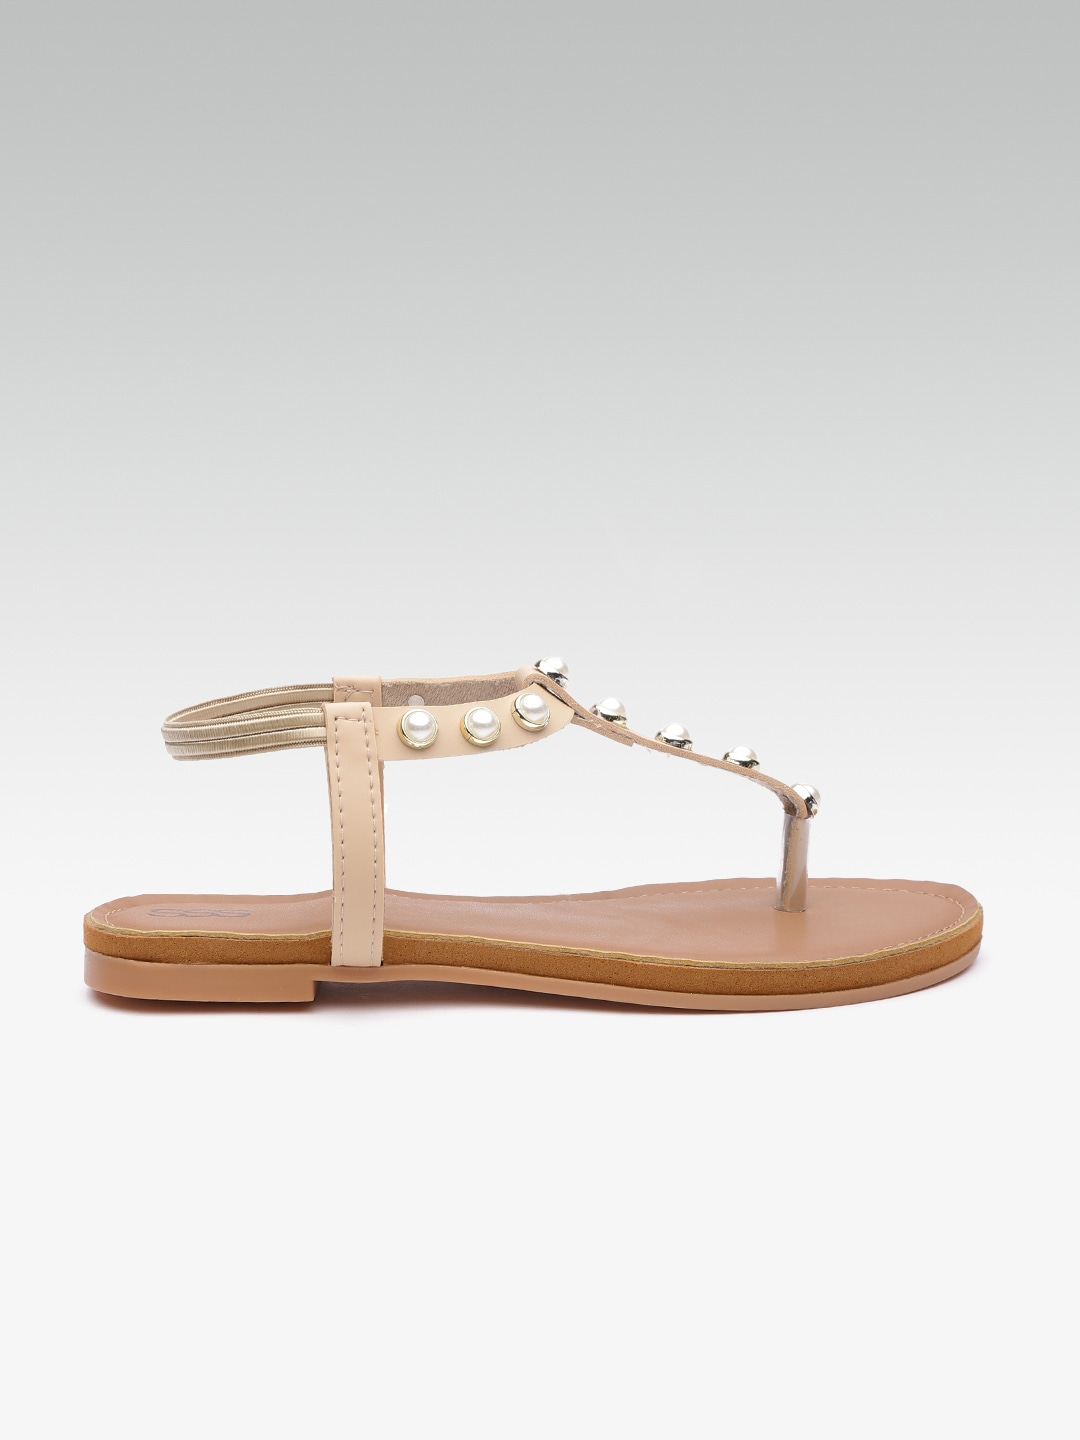 Beige Solid T-Strap Flats with Embellished Detail